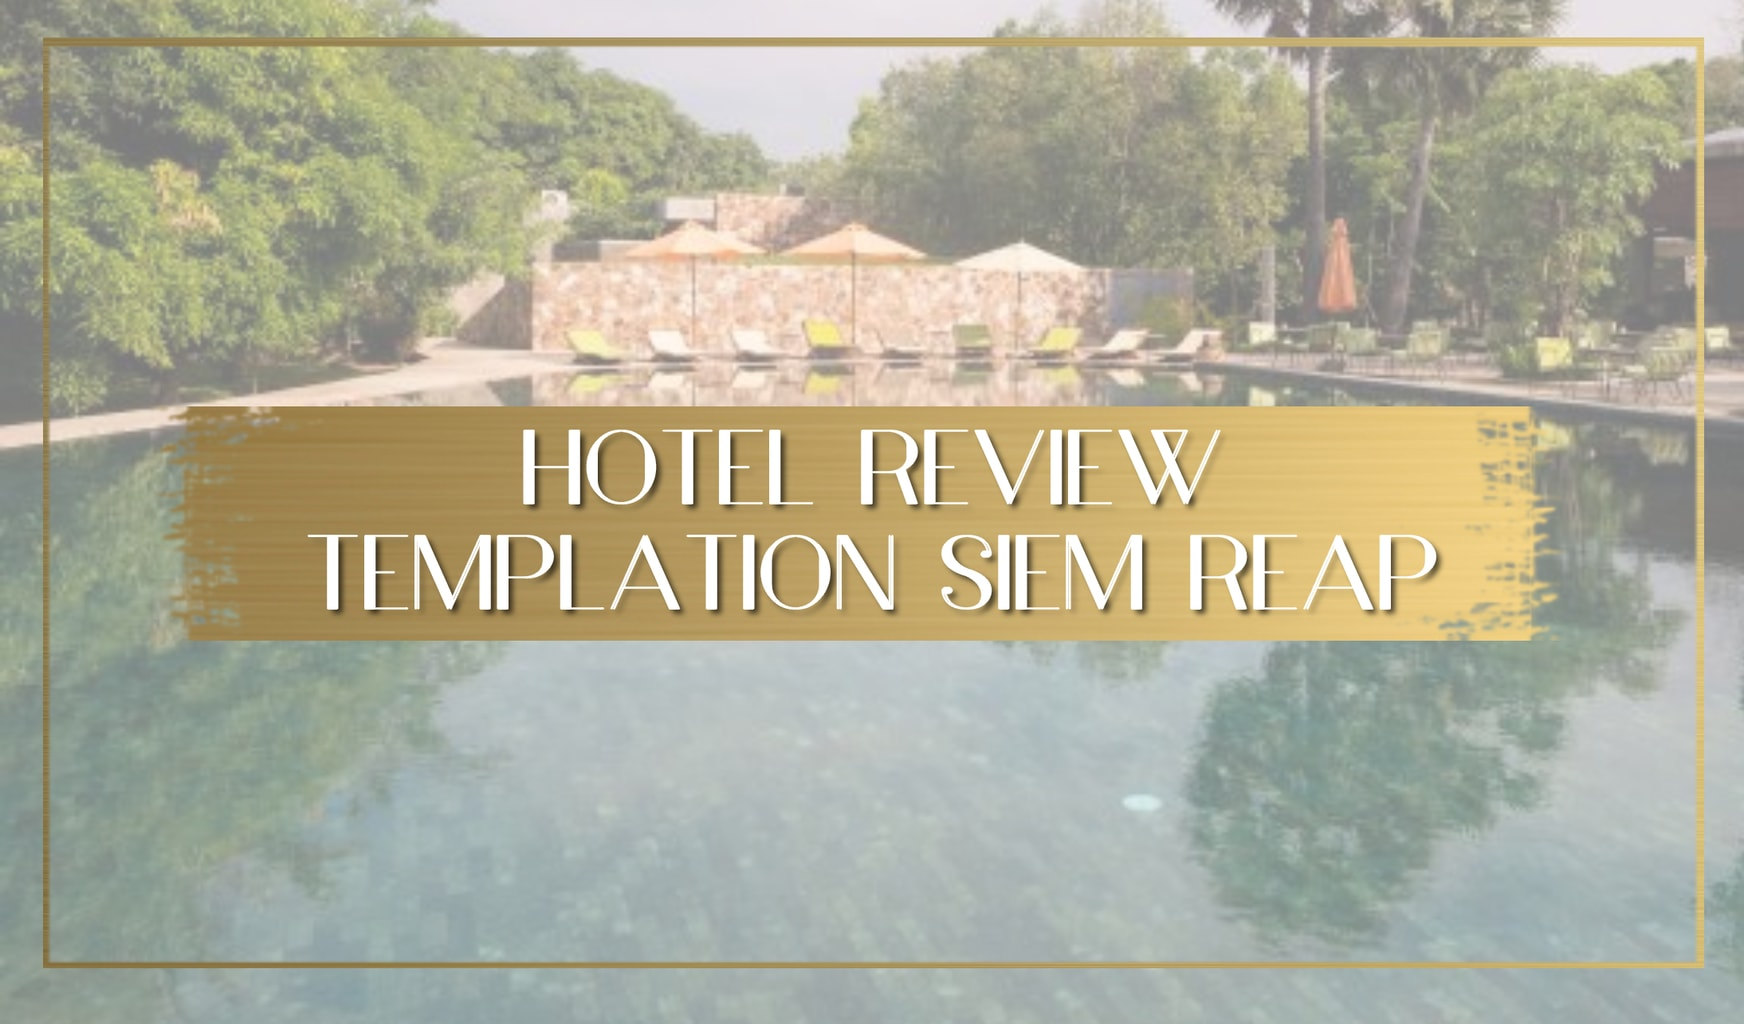 Review Templation Siem Reap Cambodia main